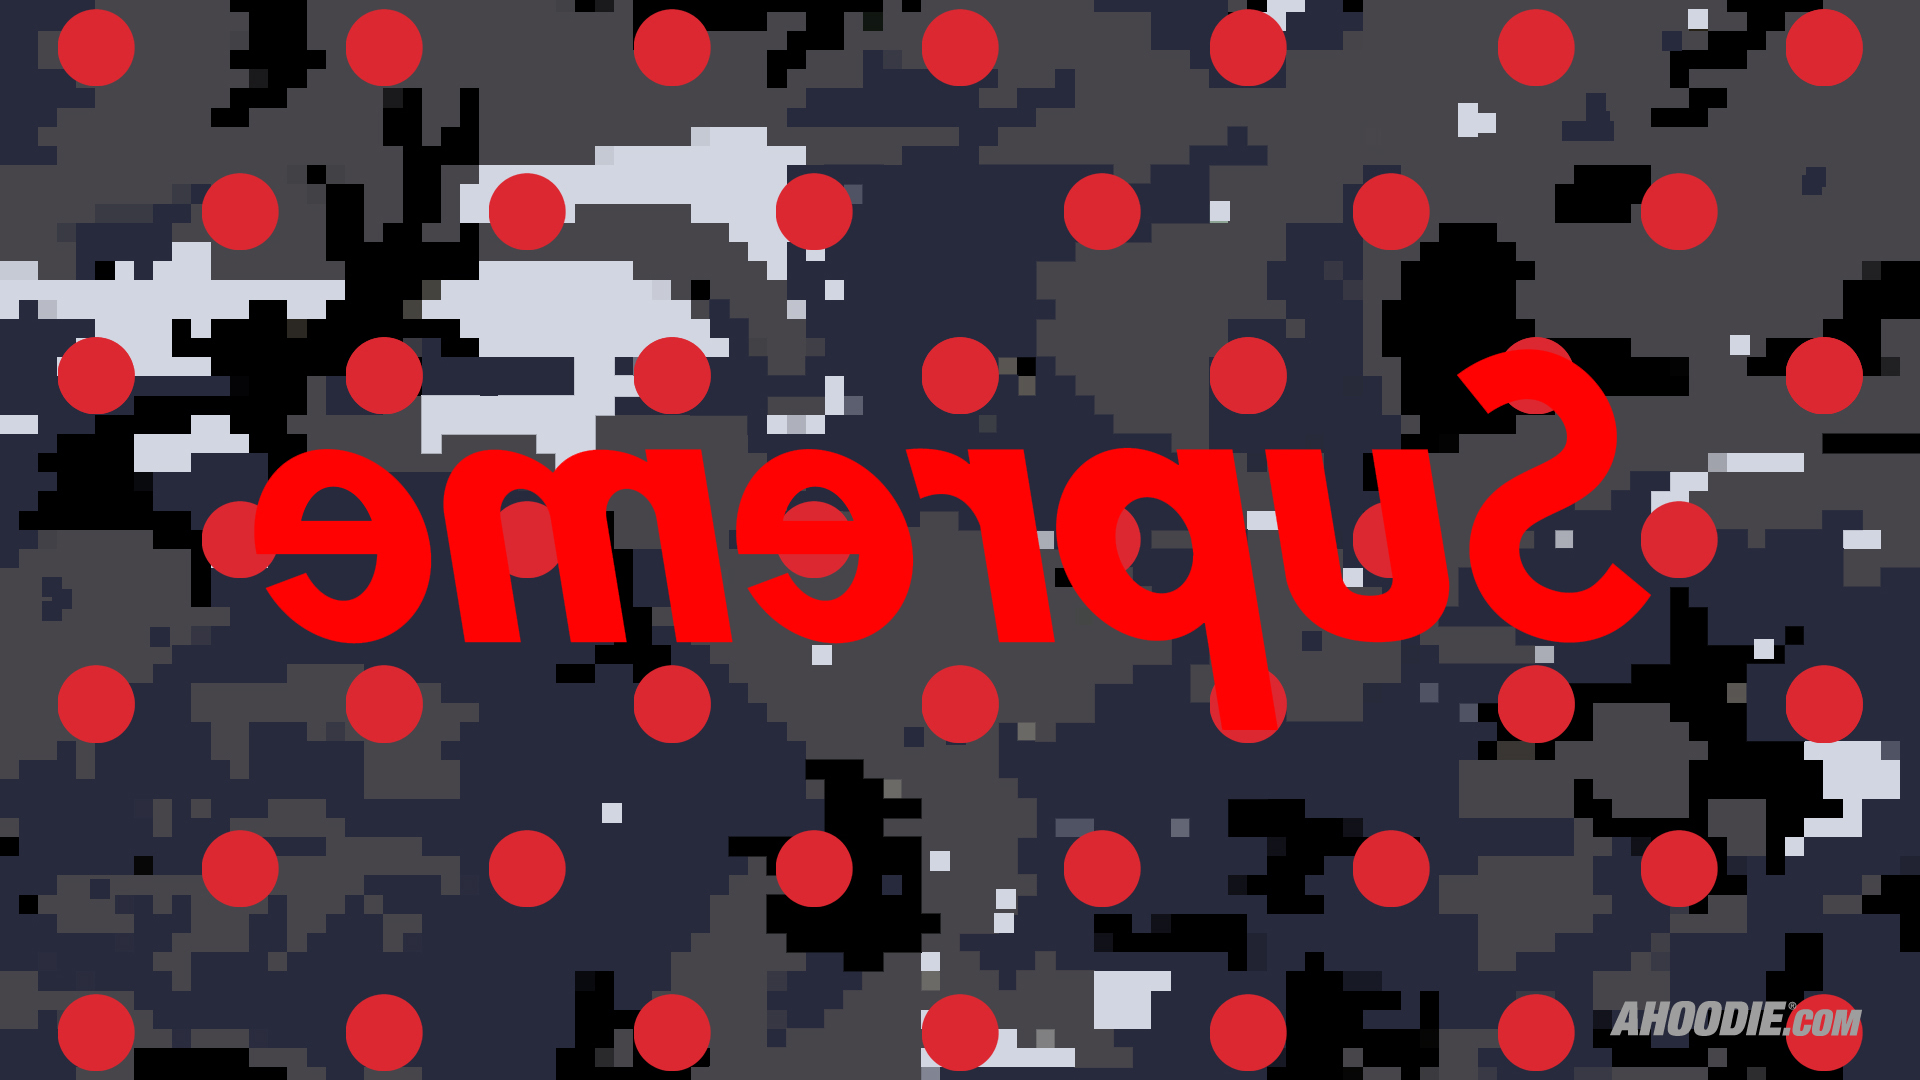 Supreme Glitch Wallpaper Computer Hd Wallpapers backgrounds 1920x1080